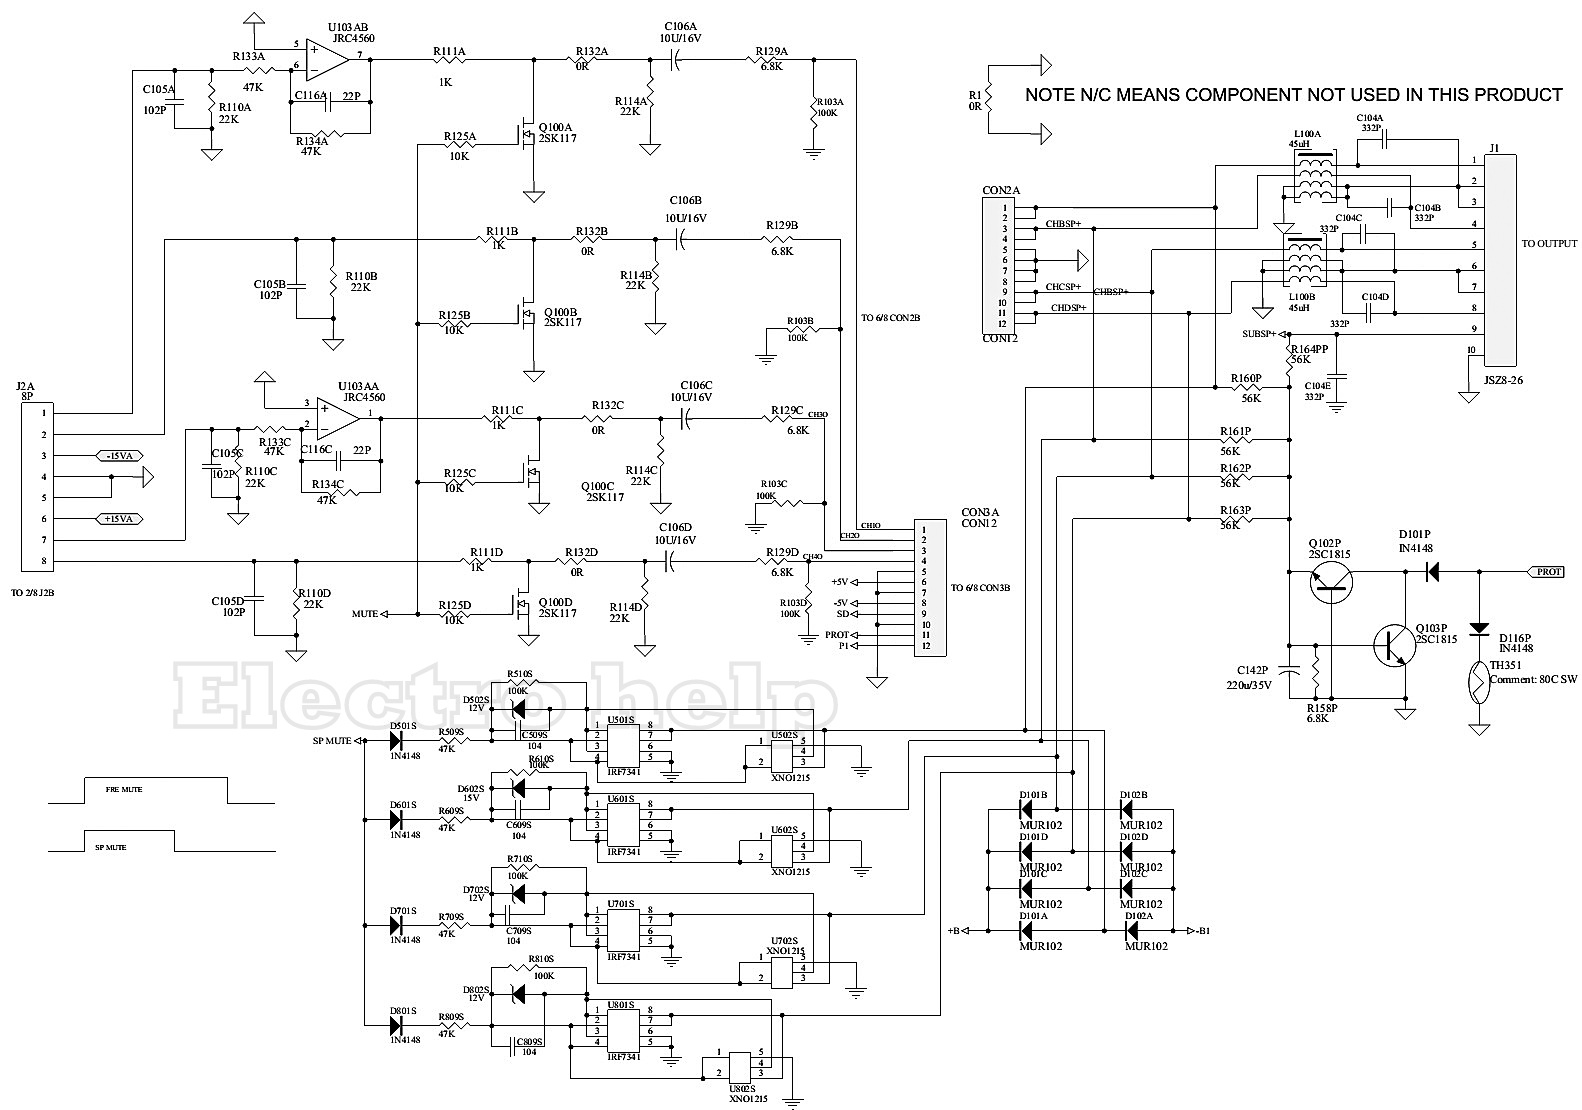 Infinity Reference Crossover Schematic Custom Wiring Diagram Kappa 5 Disassembly Troubleshooting Circuit Rh Electronicshelponline Blogspot Com Tweeter Diagrams Diy Audio